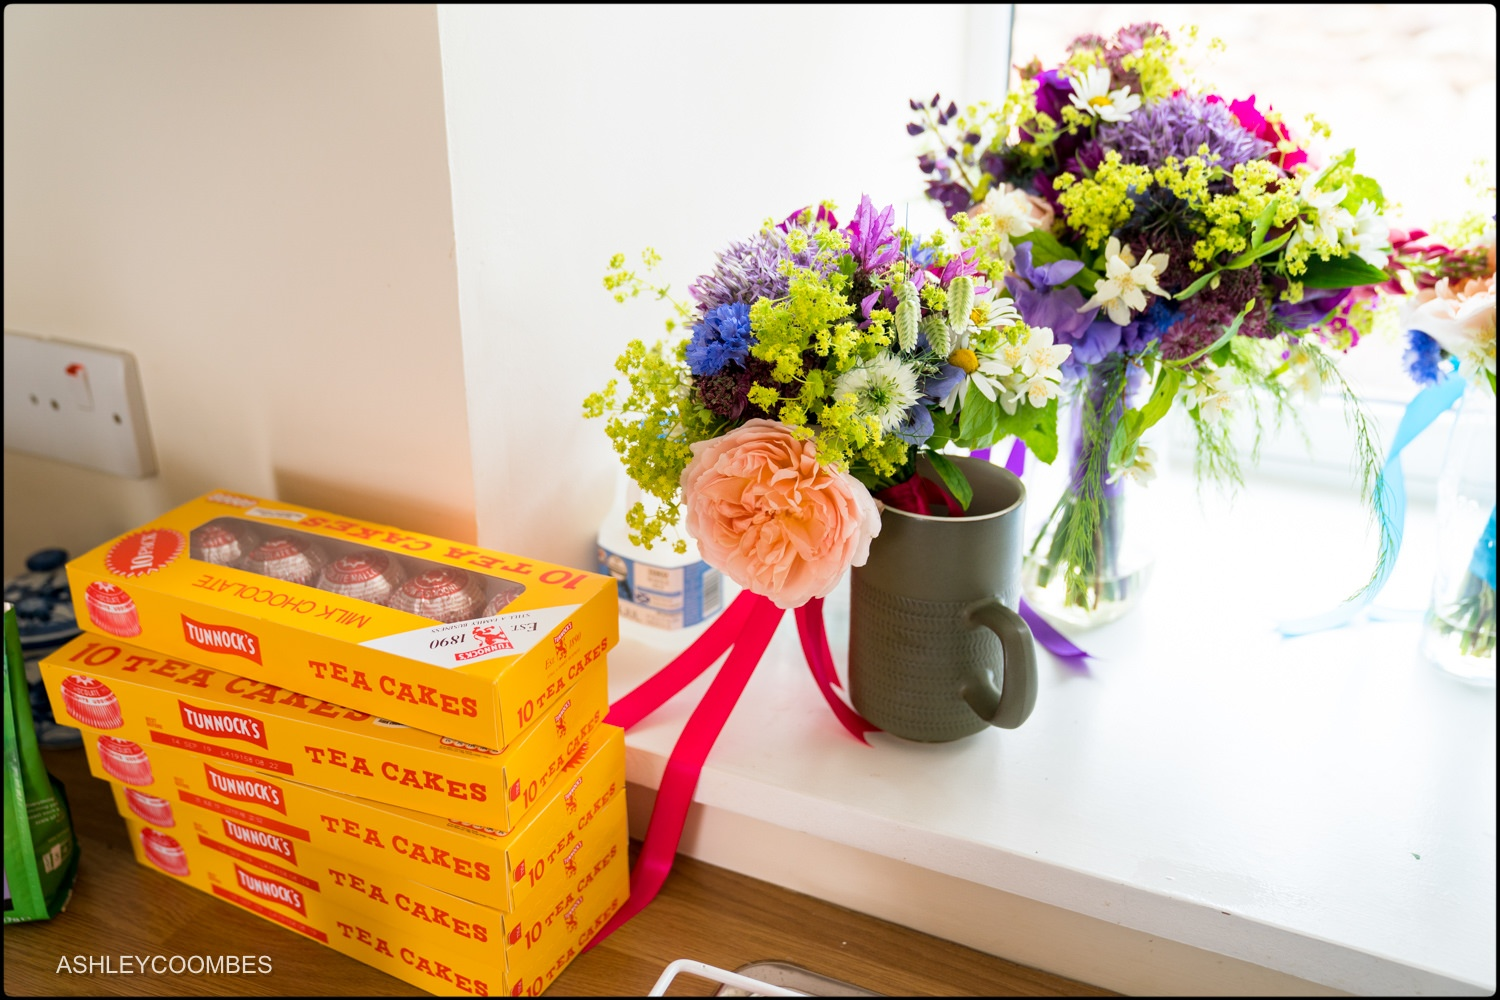 Bouquets and tunnocks tea cakes